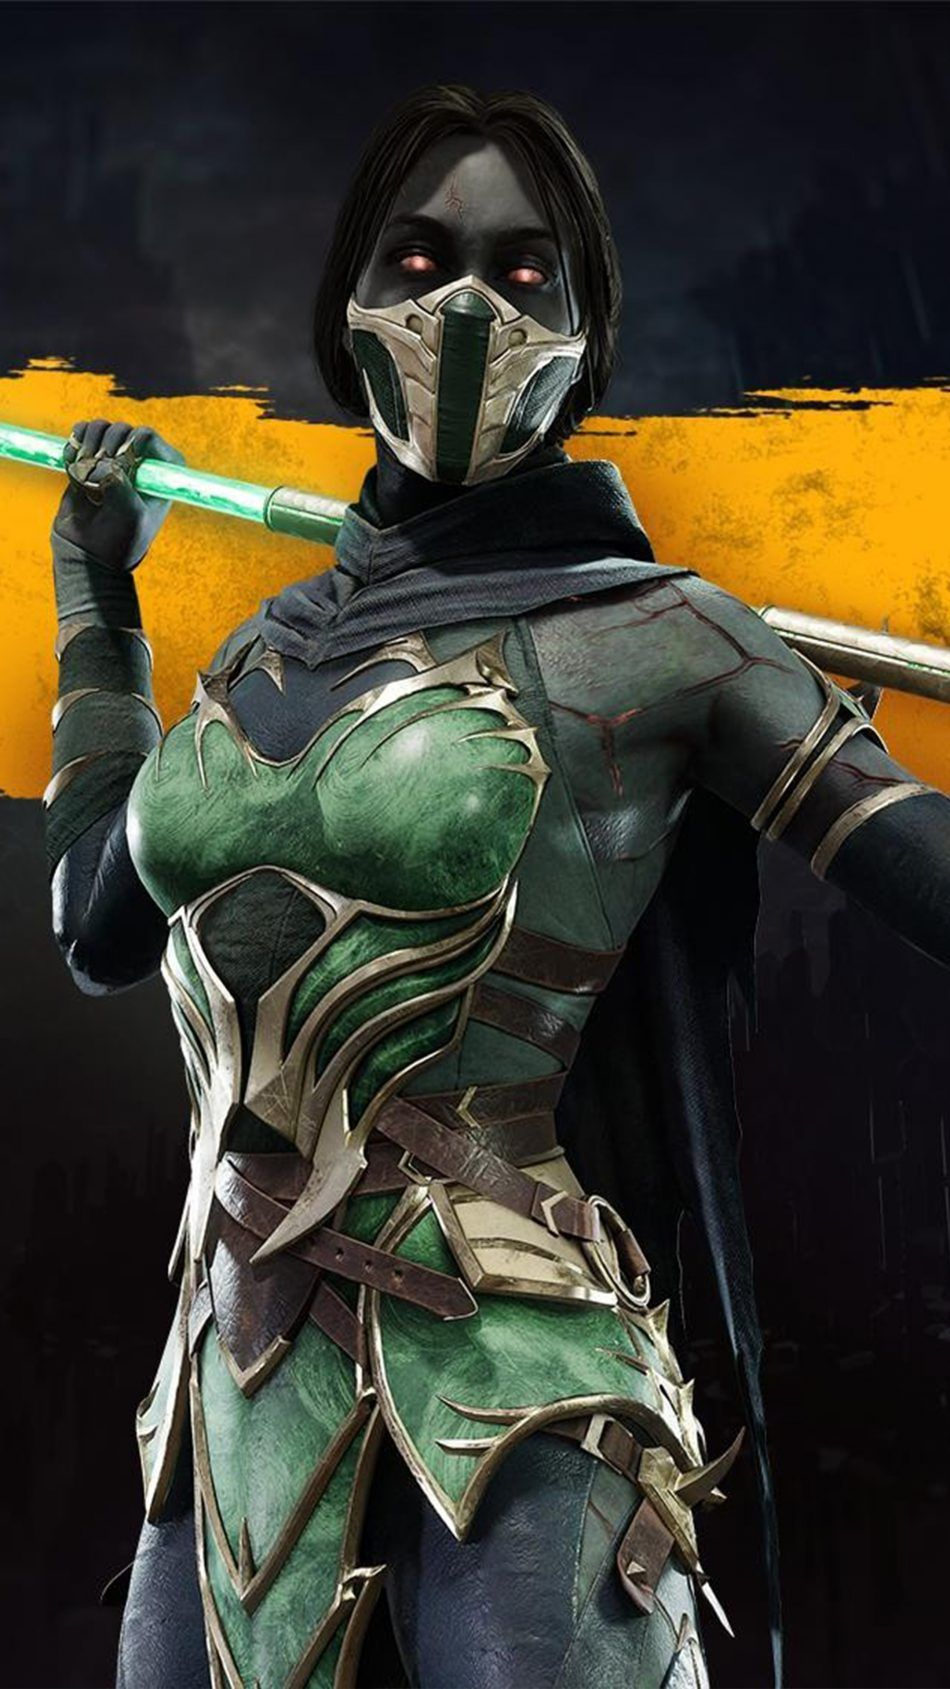 Jade Mortal Kombat 11 4K Ultra HD Mobile Wallpaper